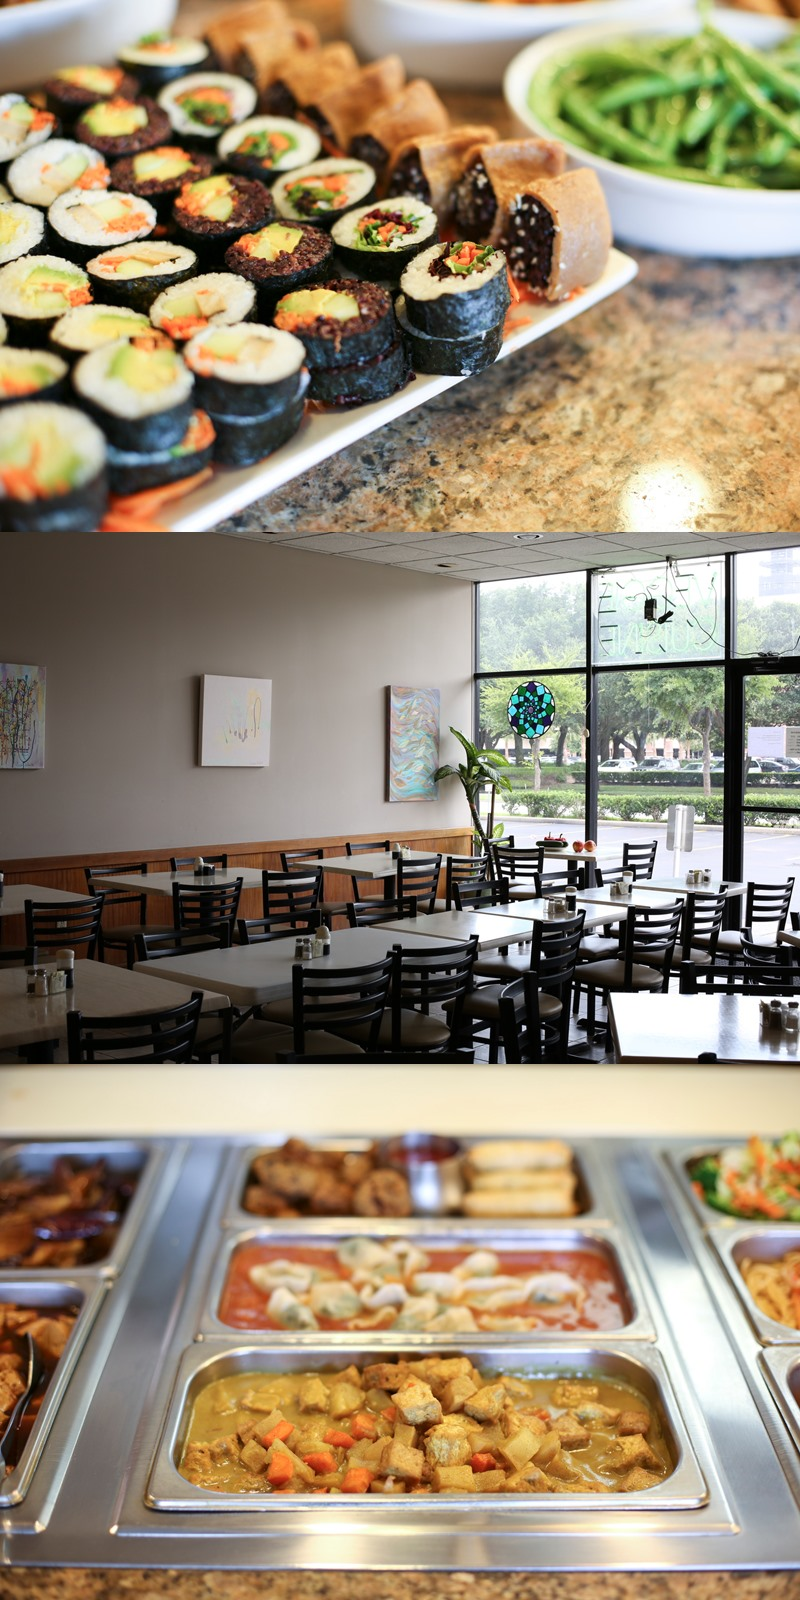 Pepper Tree in Houston, TX is an all-vegan Asian food restaurant